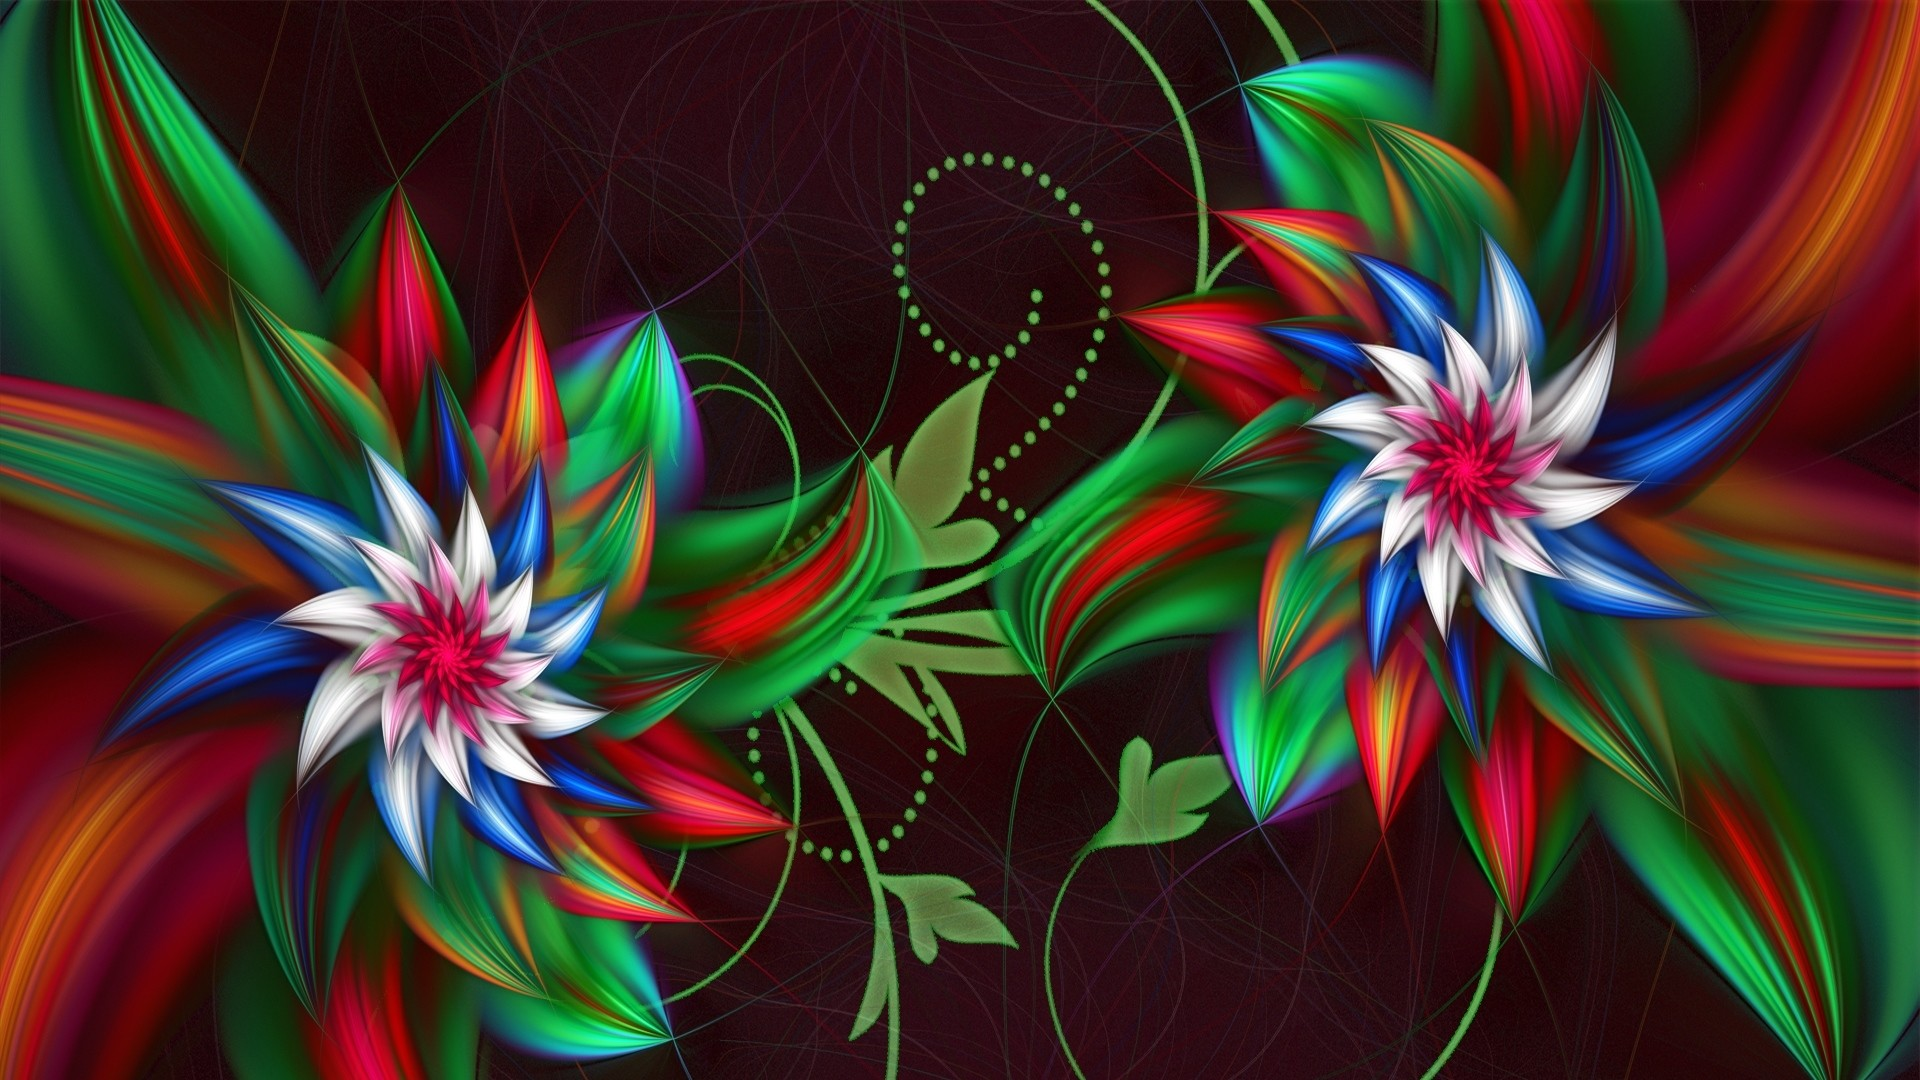 Preview wallpaper 3d, abstract, fractal, flowers 1920×1080